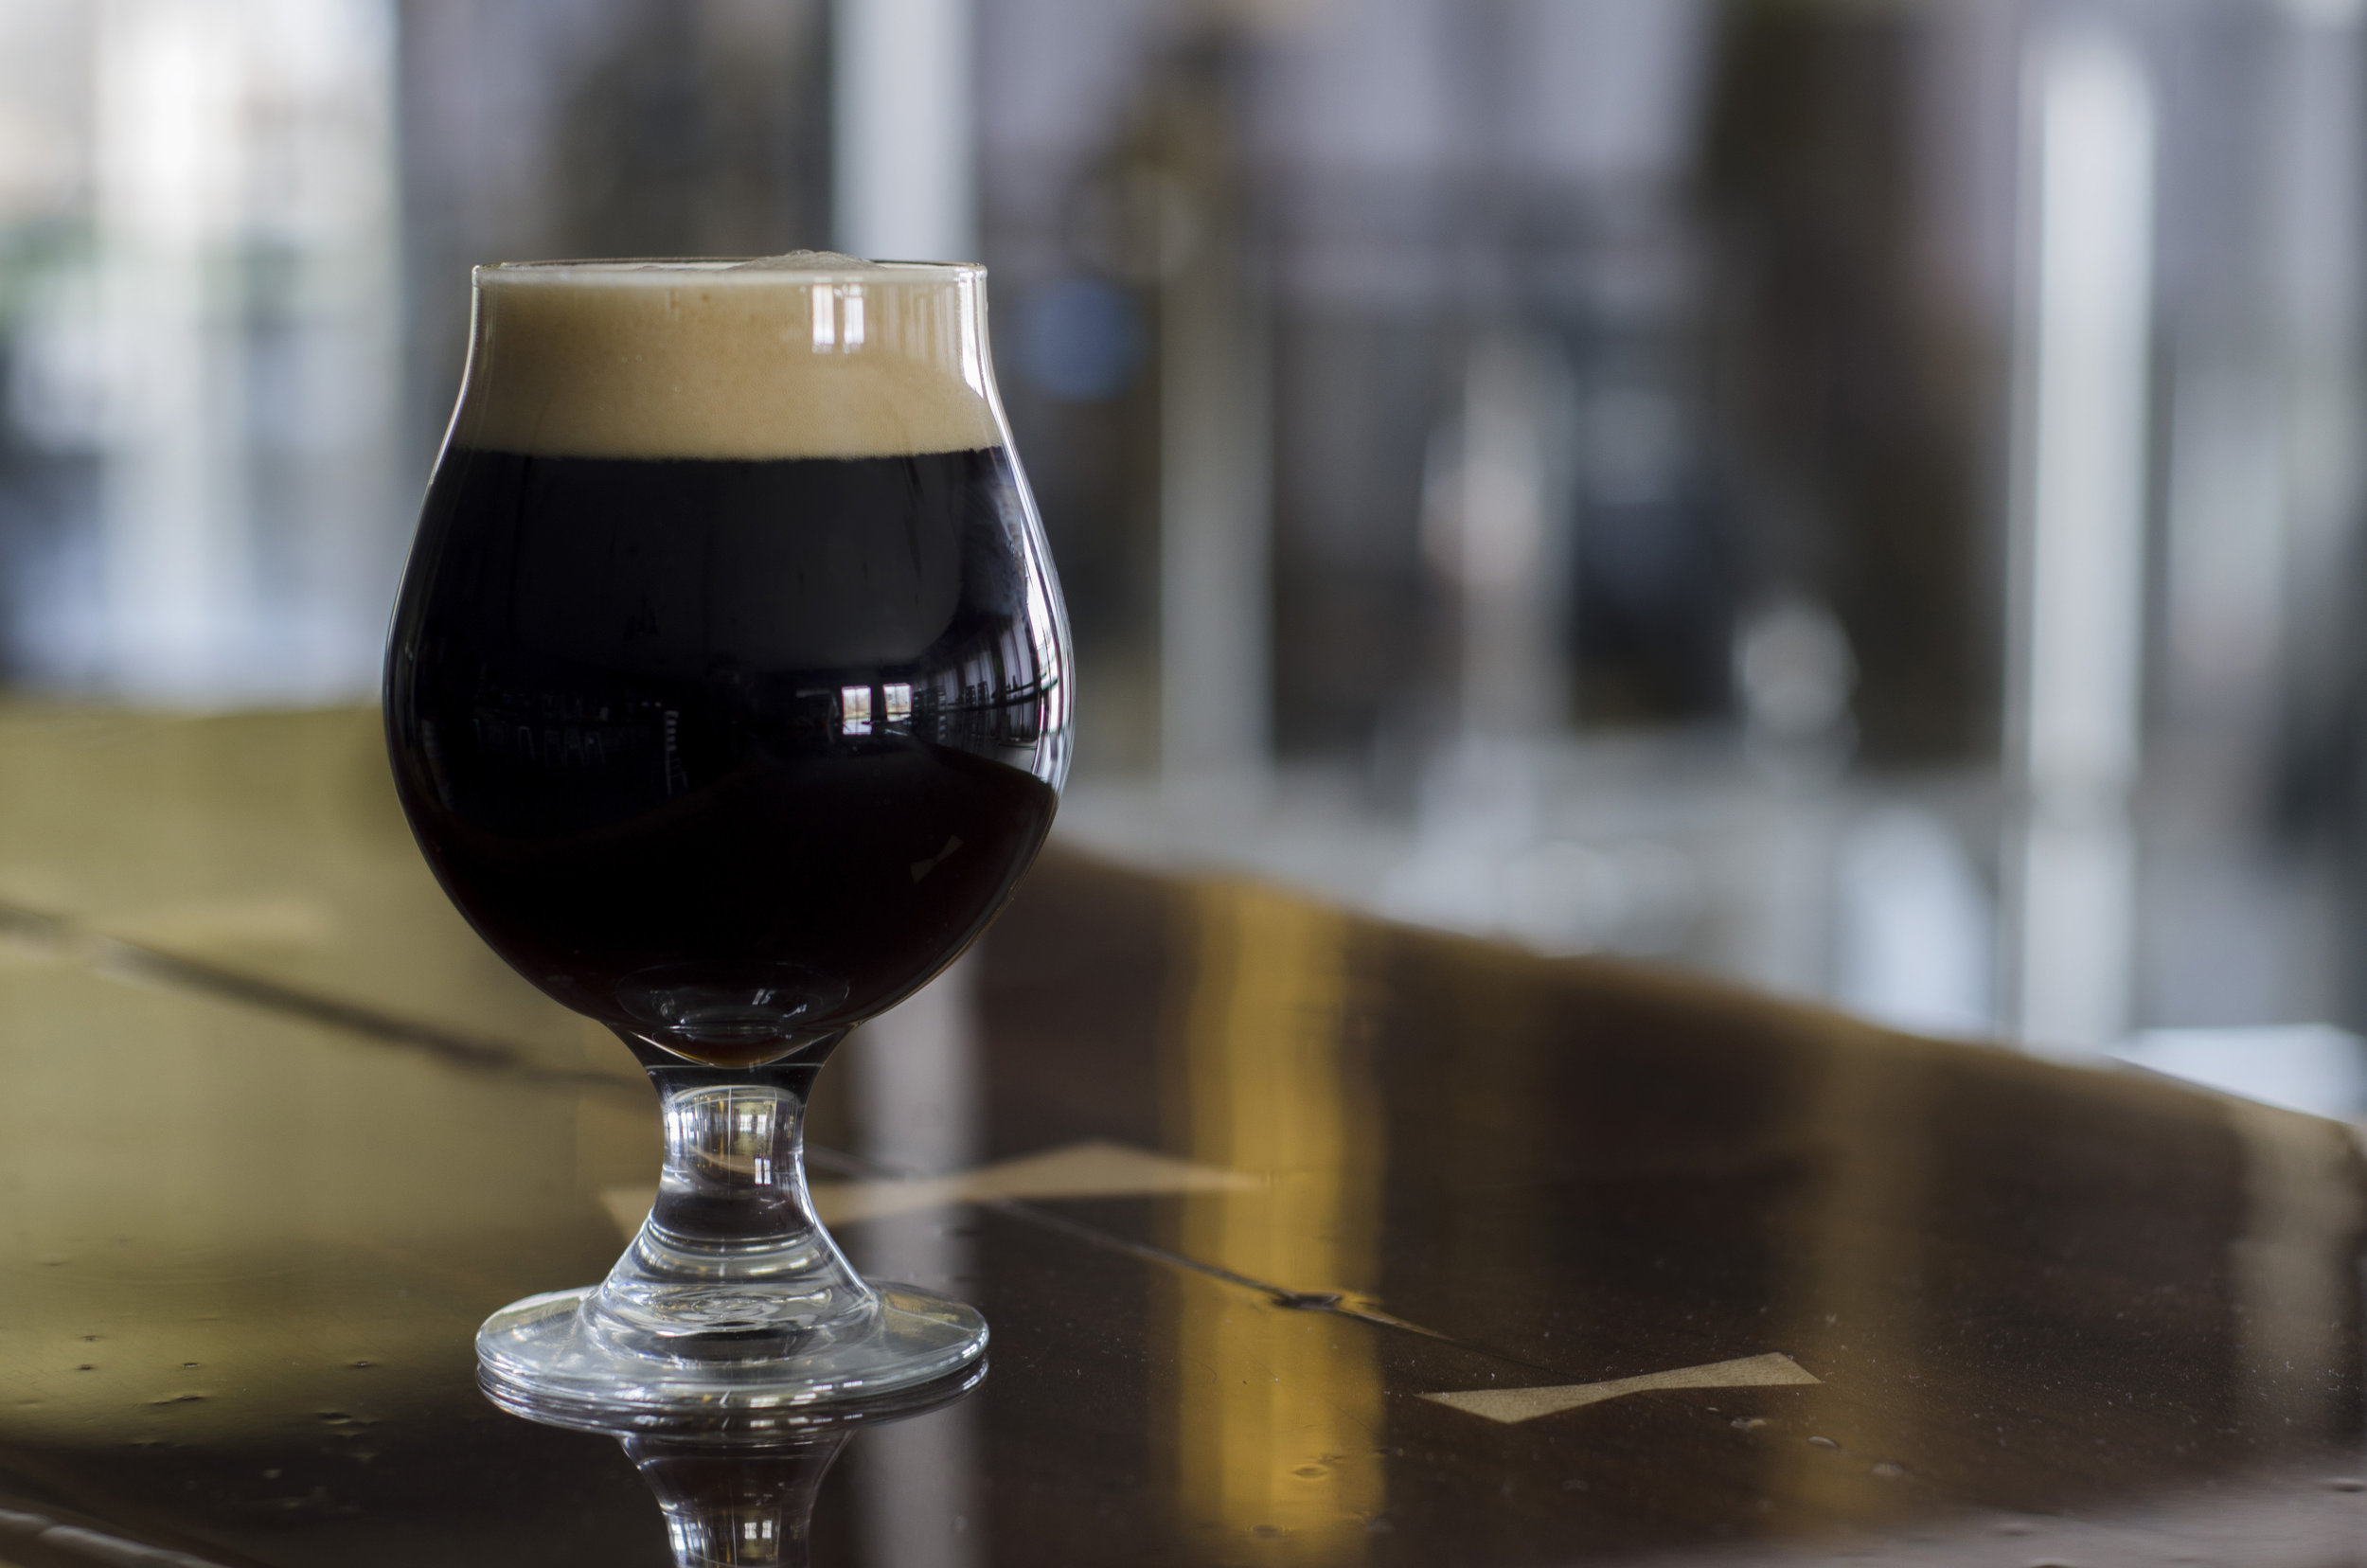 Waterspout Stout - Milk Stout, Brewed With Coffee and Cocoa Nibs  6.5% ABV 42 IBUA smooth light-bodied stout with hints of Toffee, Coffee & Chocolate. Brewed with Highlander Grogg Coffee and imported cocoa nibs.